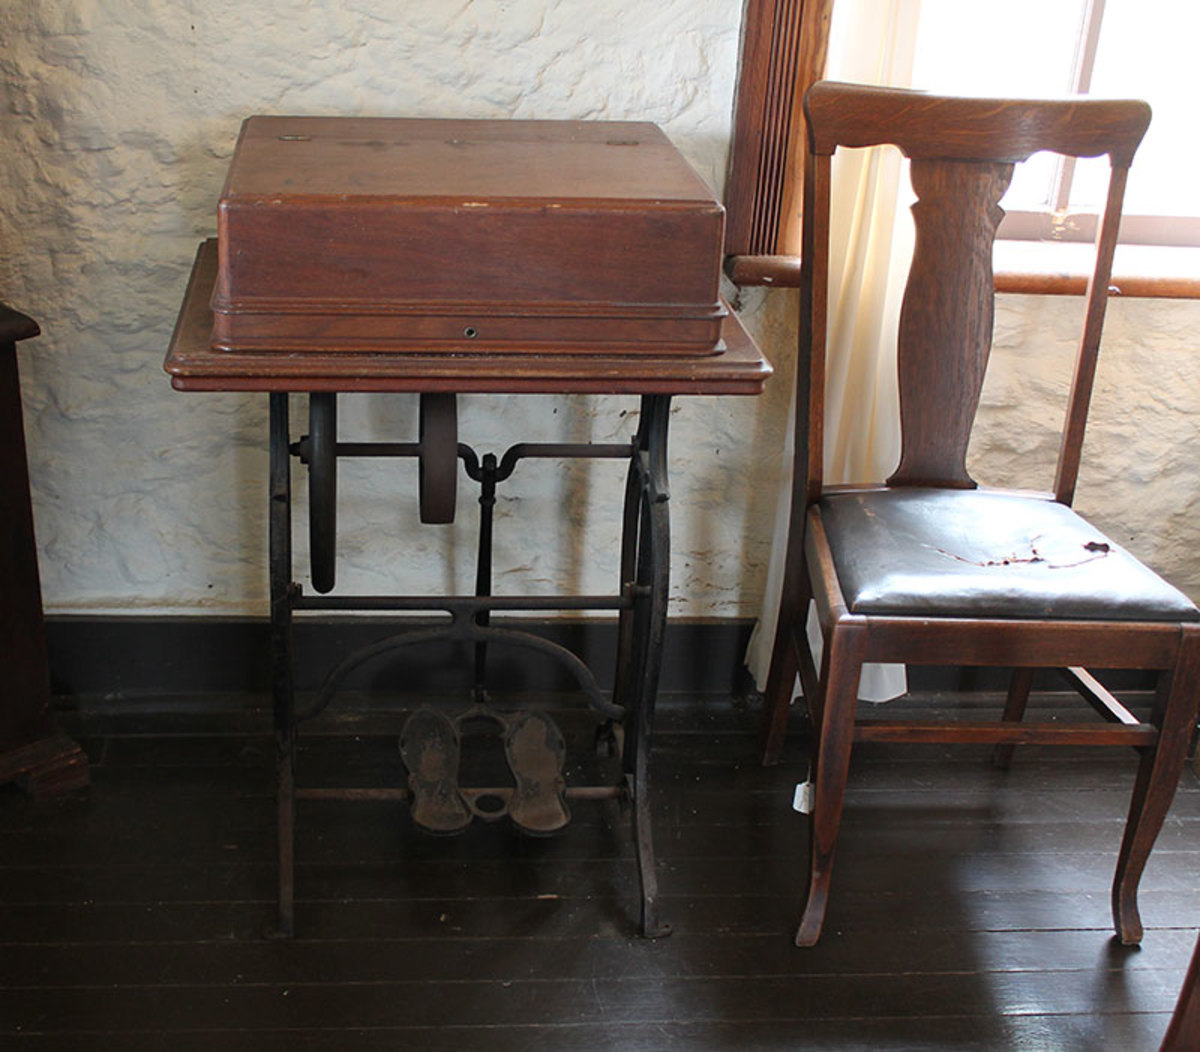 Older model double peddle treadle with a crank shaft.